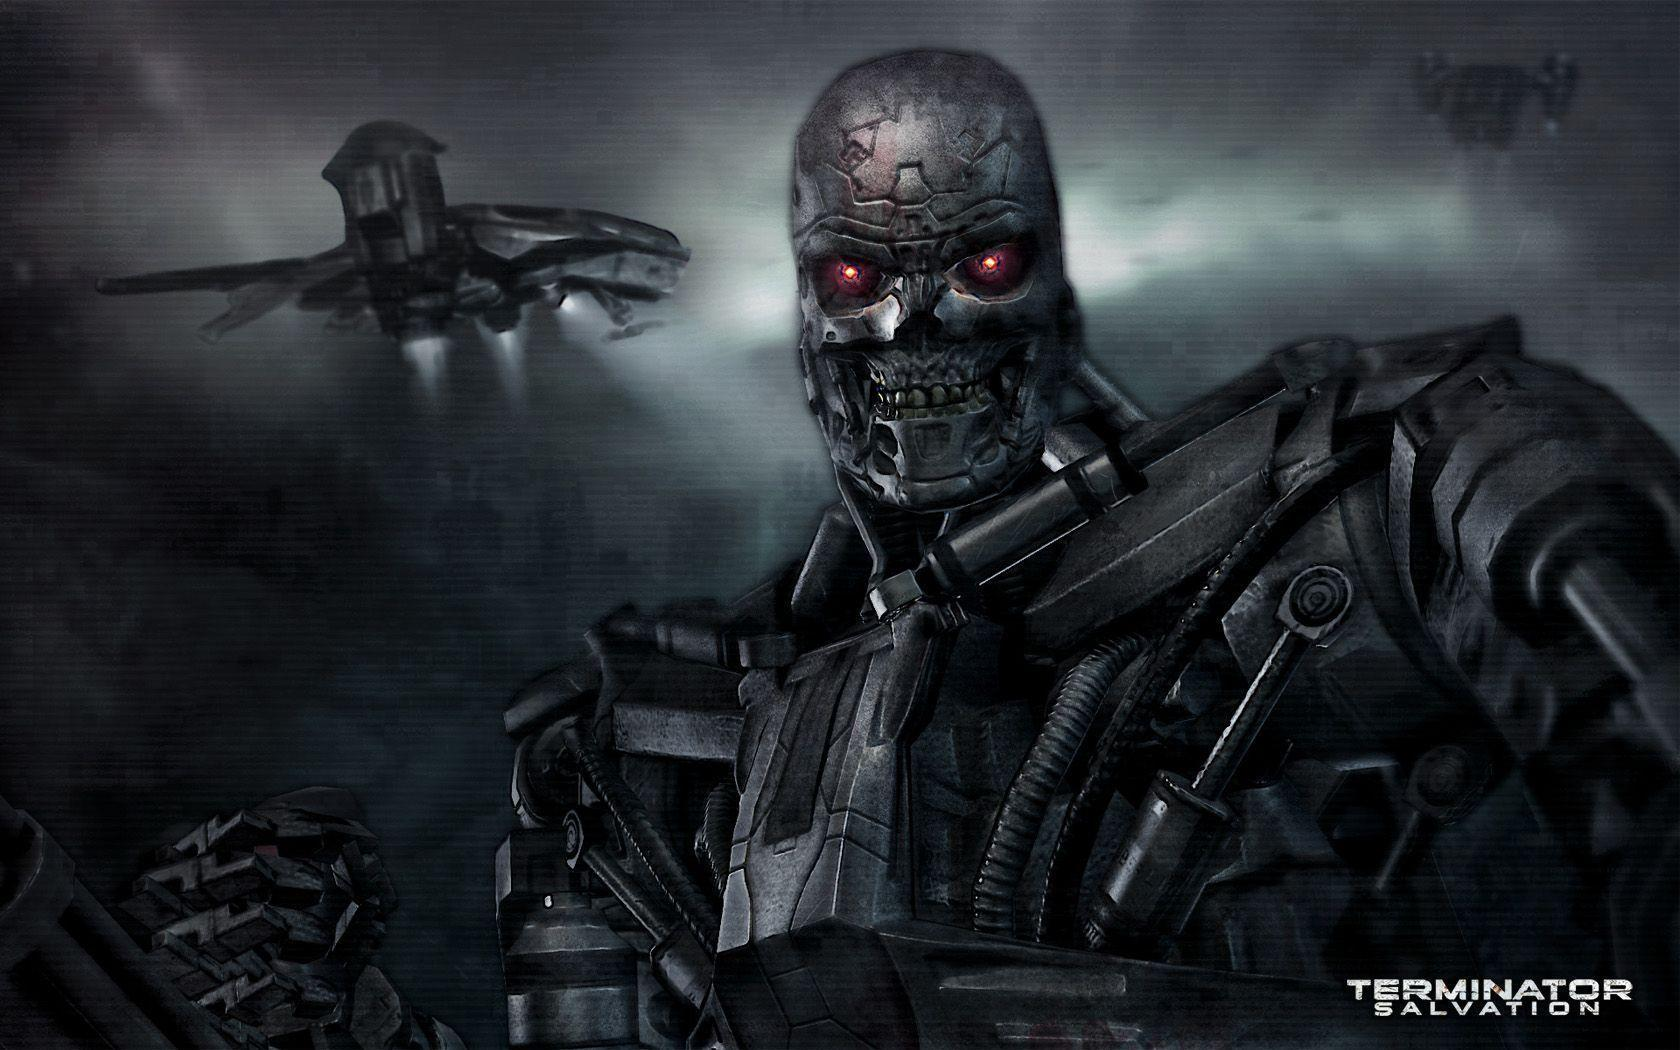 terminator salvation wallpaper hd - photo #16